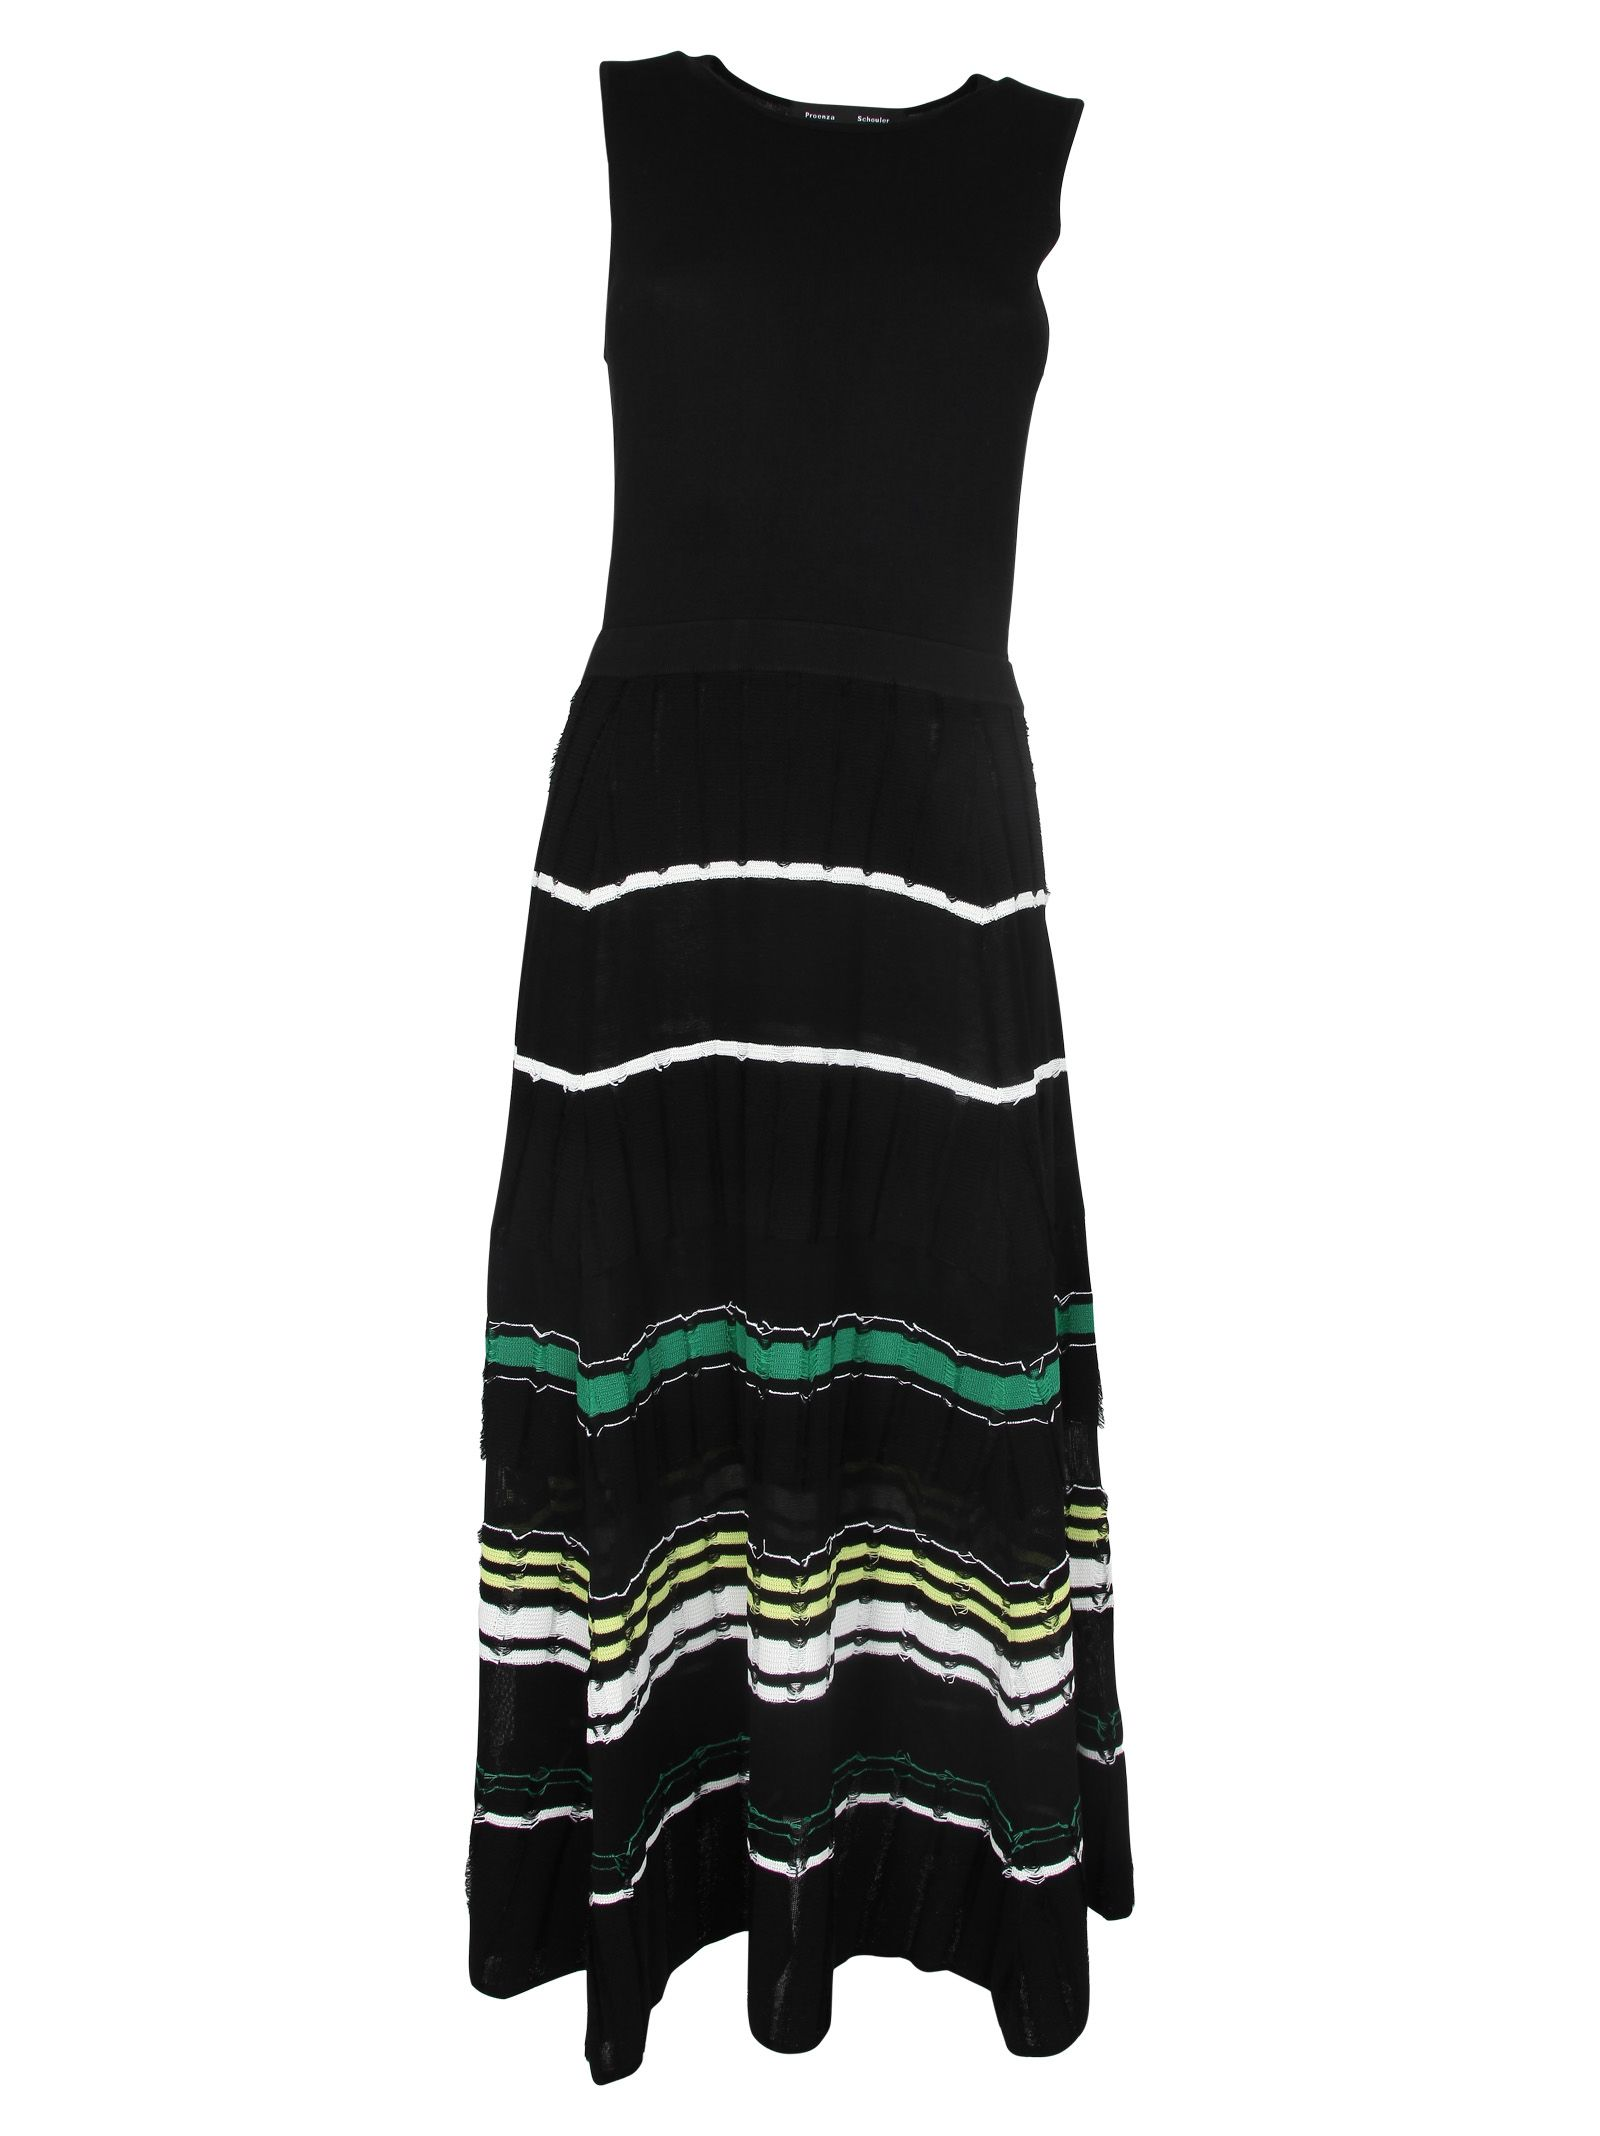 4a360916bd2 Proenza Schouler Proenza Schouler Pleated Long Dress - Black green ...